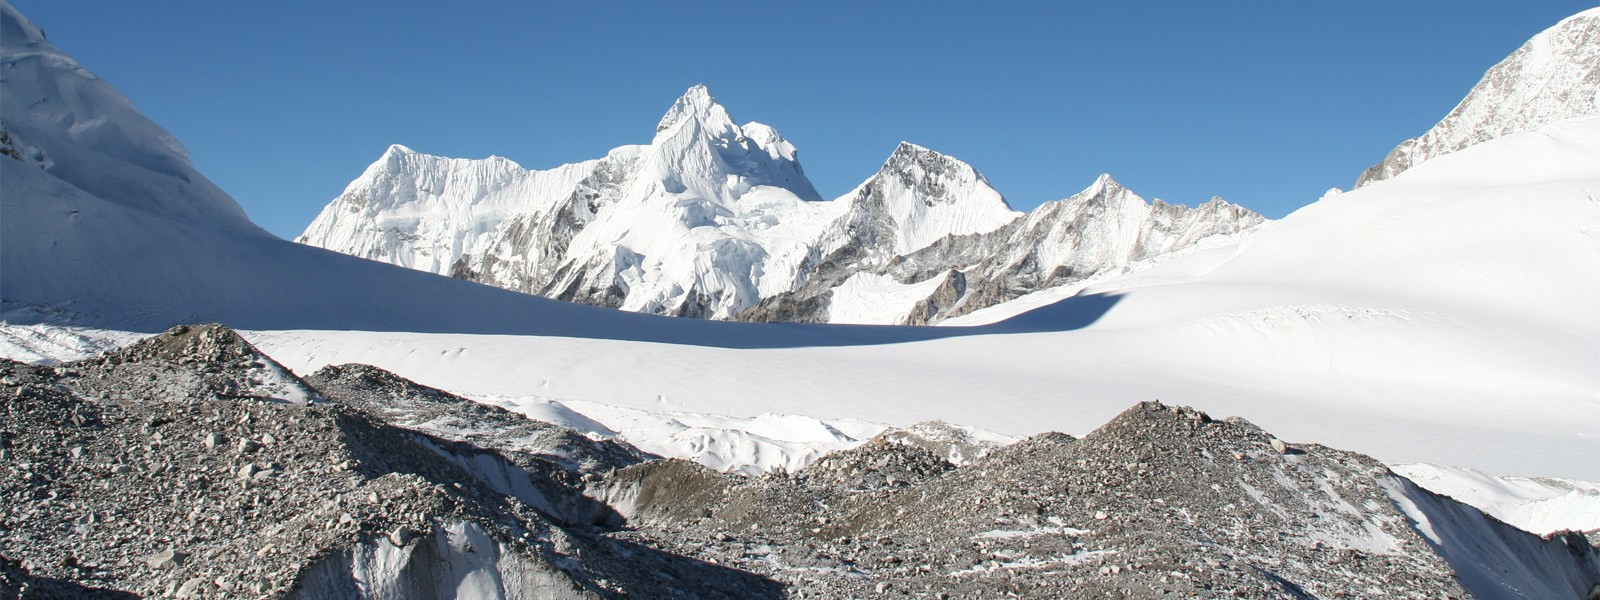 View from Cho Oyu Advance Base Camp